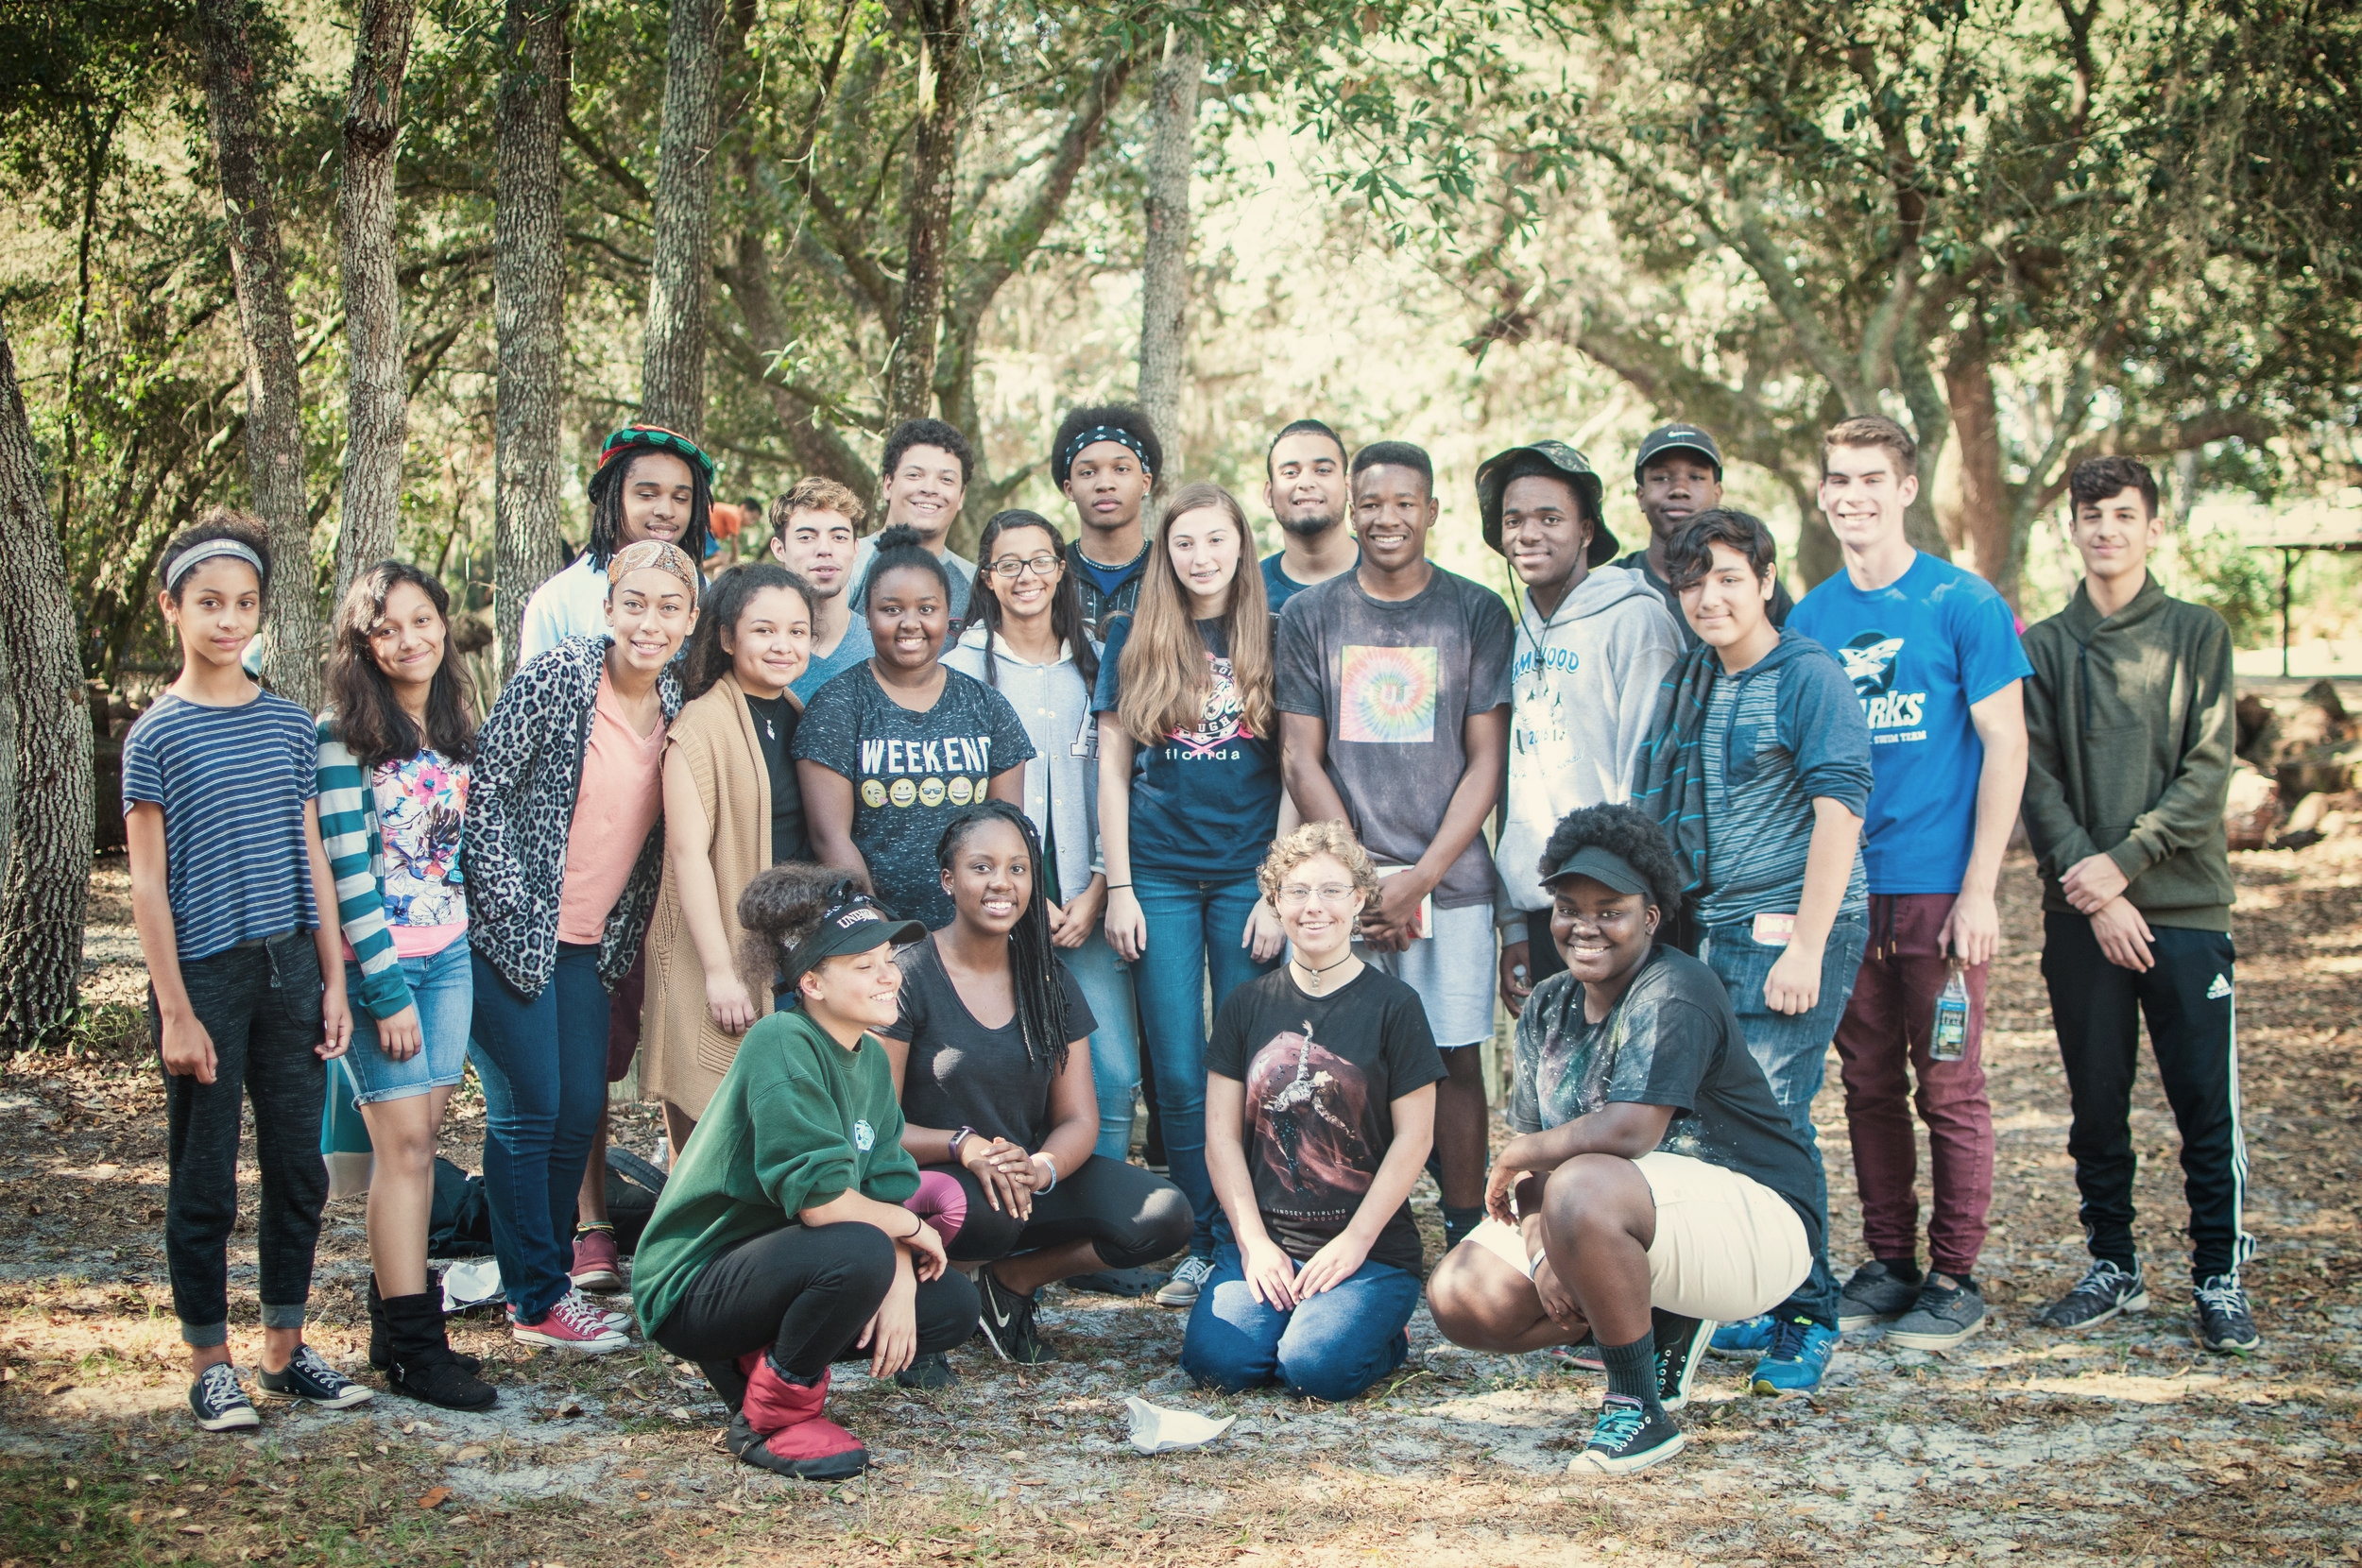 Different ages - Middle-Schoolers, High-Schoolers...